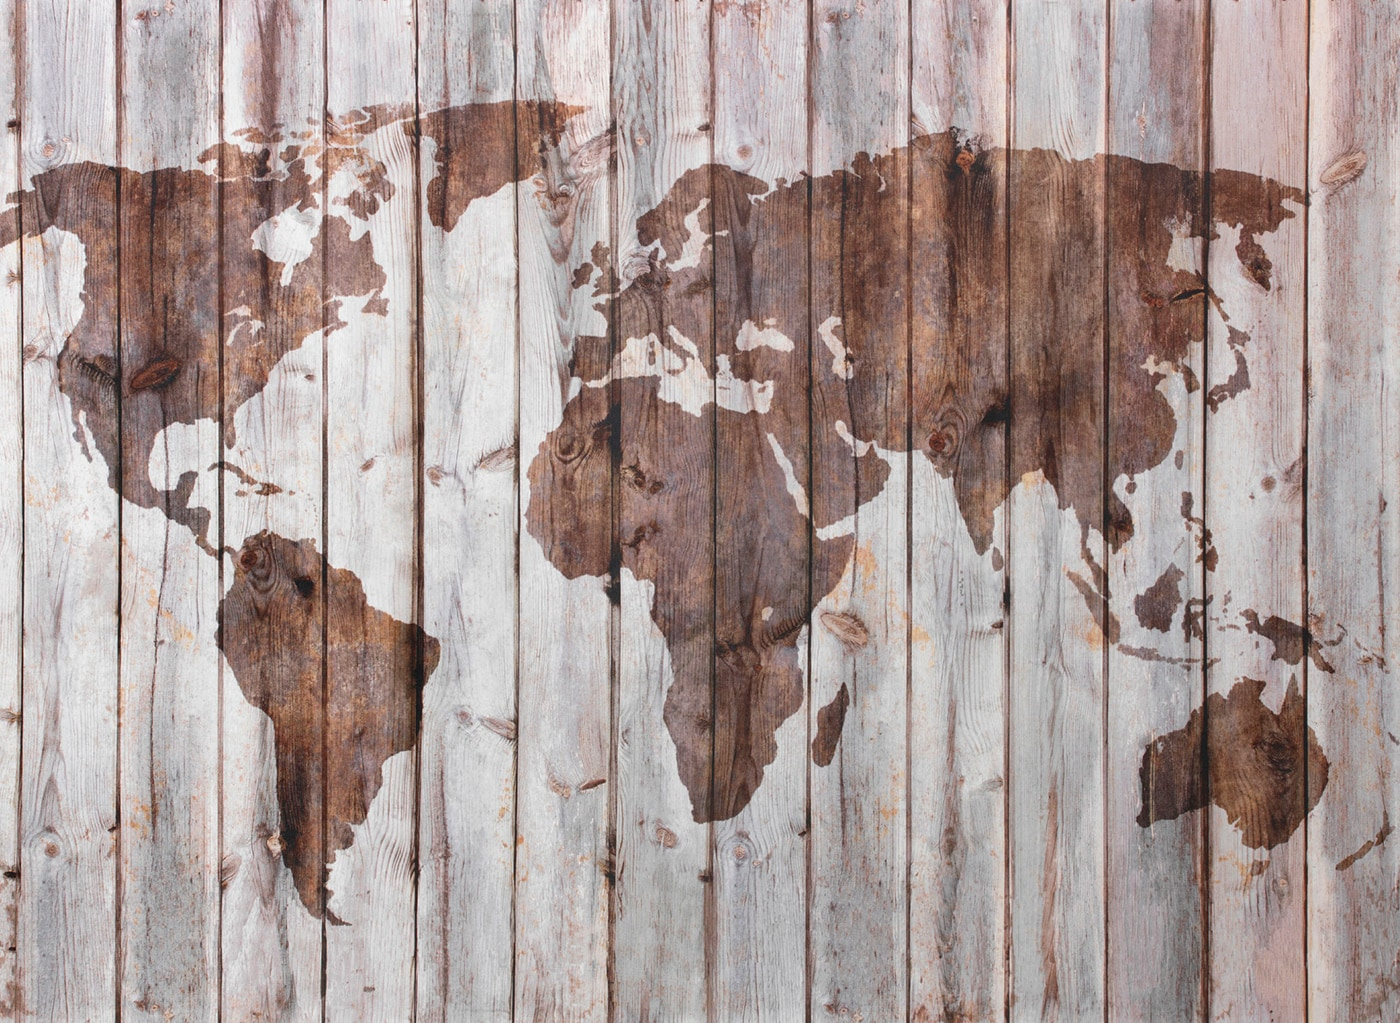 A silhouette of the world on a wooden wall, symbolising that IKEA is global brand with a lot of products made from wood.